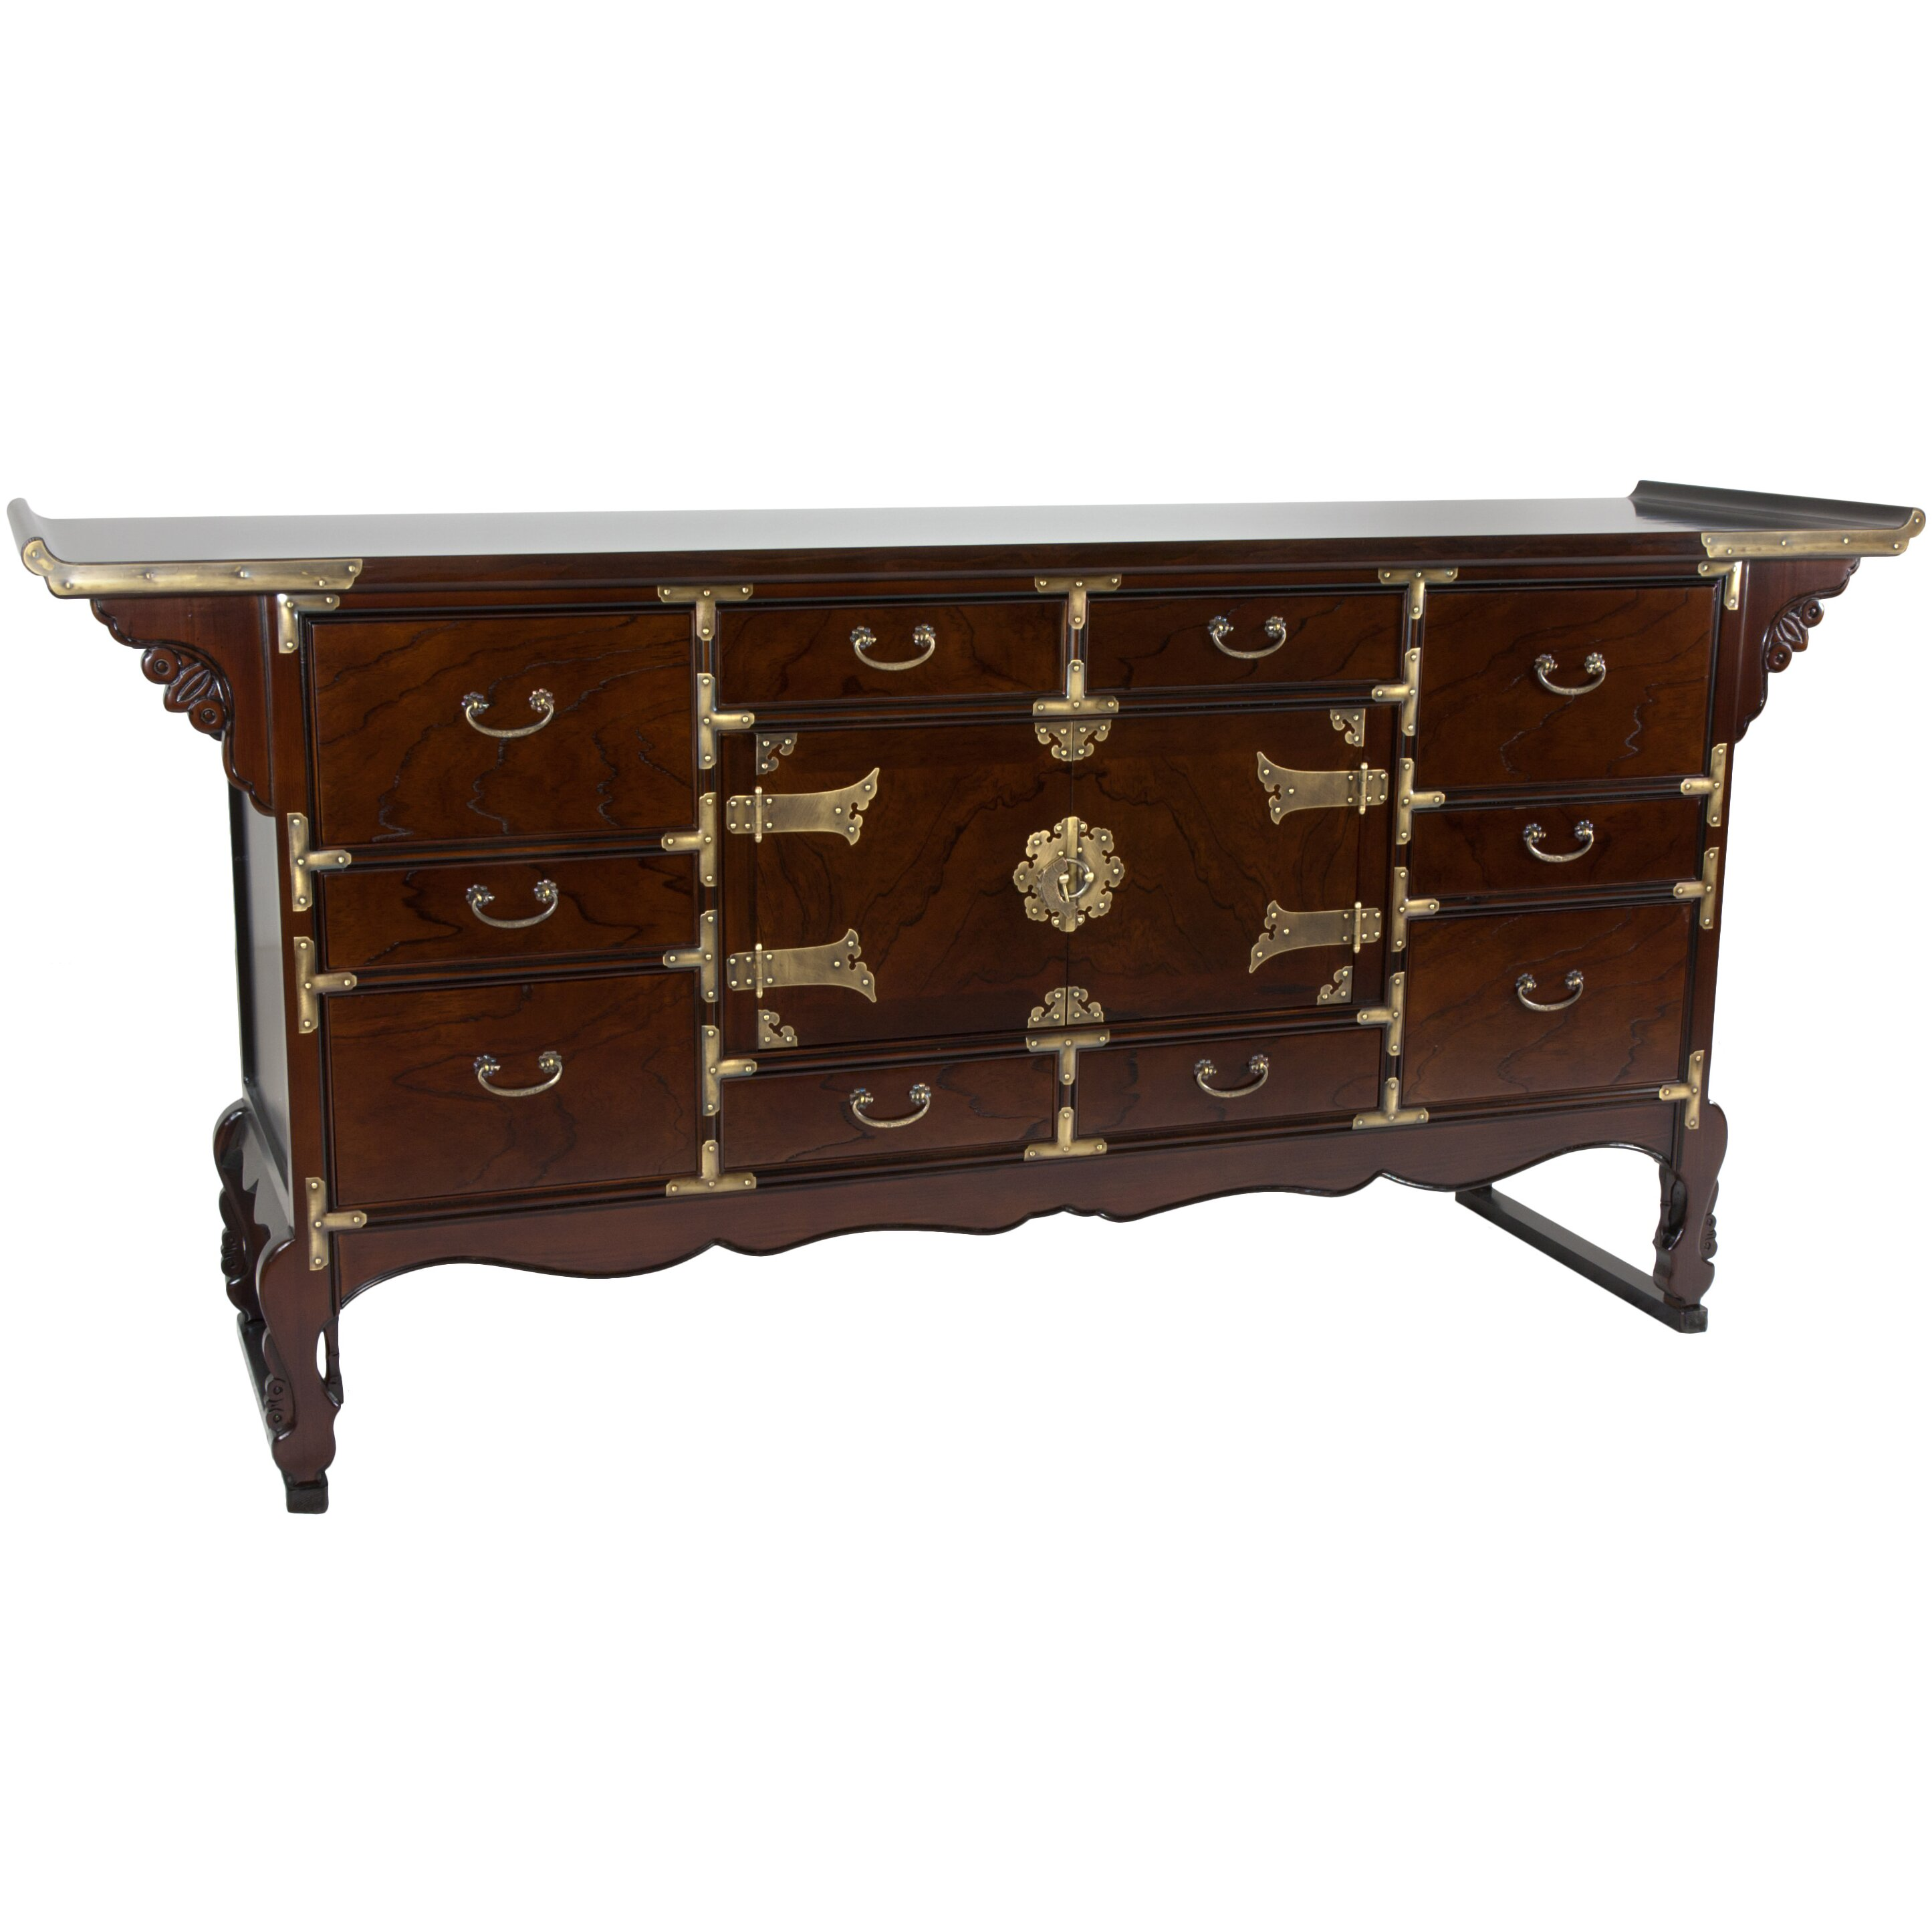 Oriental furniture korean tansu buffet server wayfair for Chinese furniture